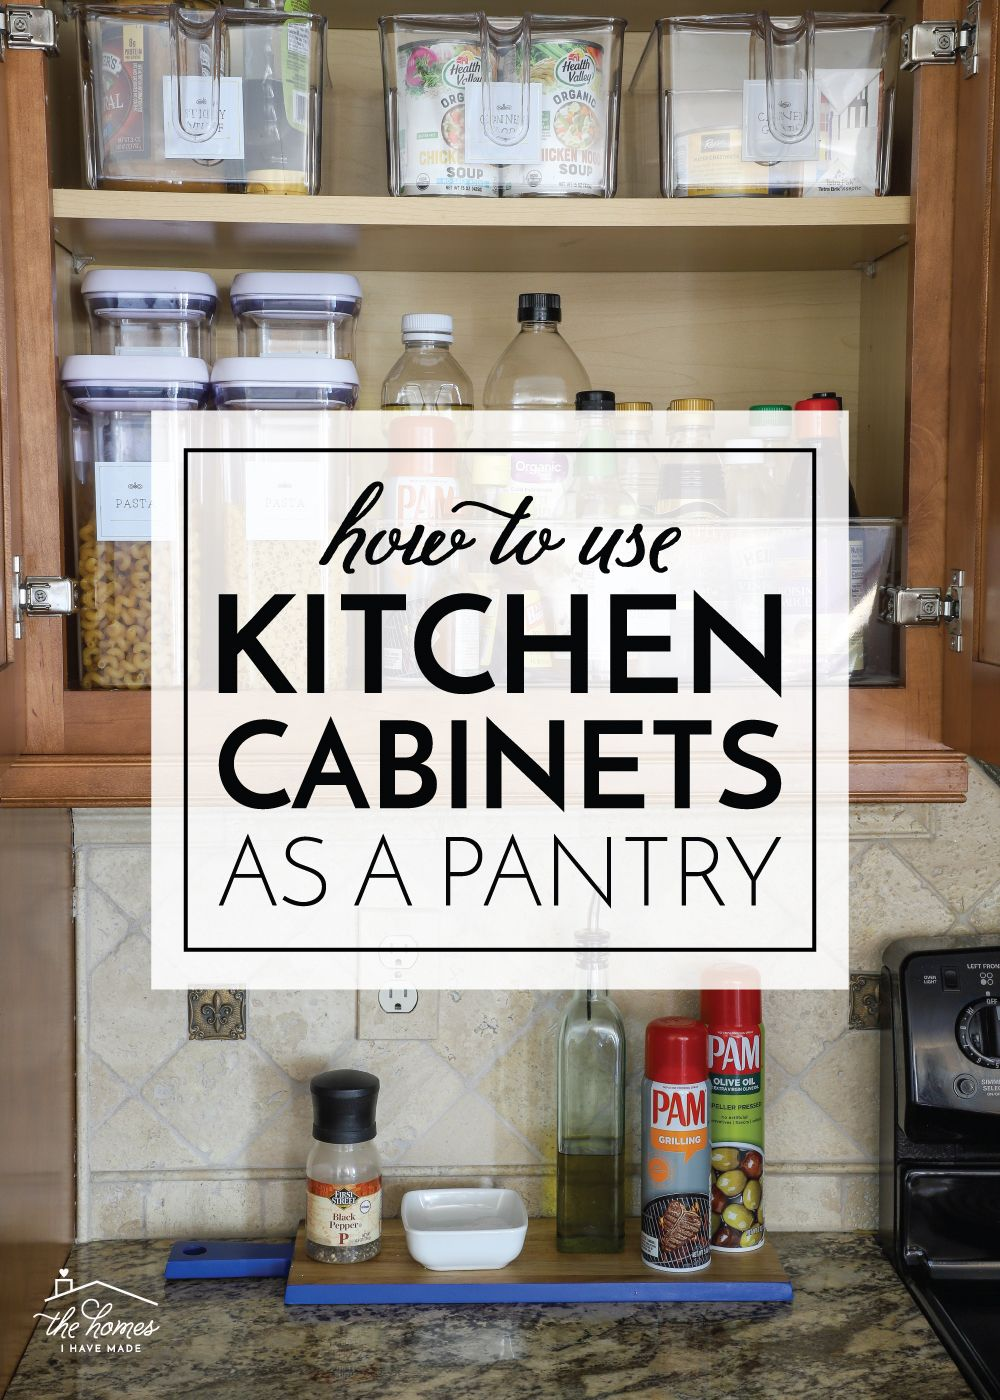 How To Use Kitchen Cabinets As A Pantry The Homes I Have Made In 2020 Used Kitchen Cabinets Kitchen Hacks Diy Kitchen Decor Hacks